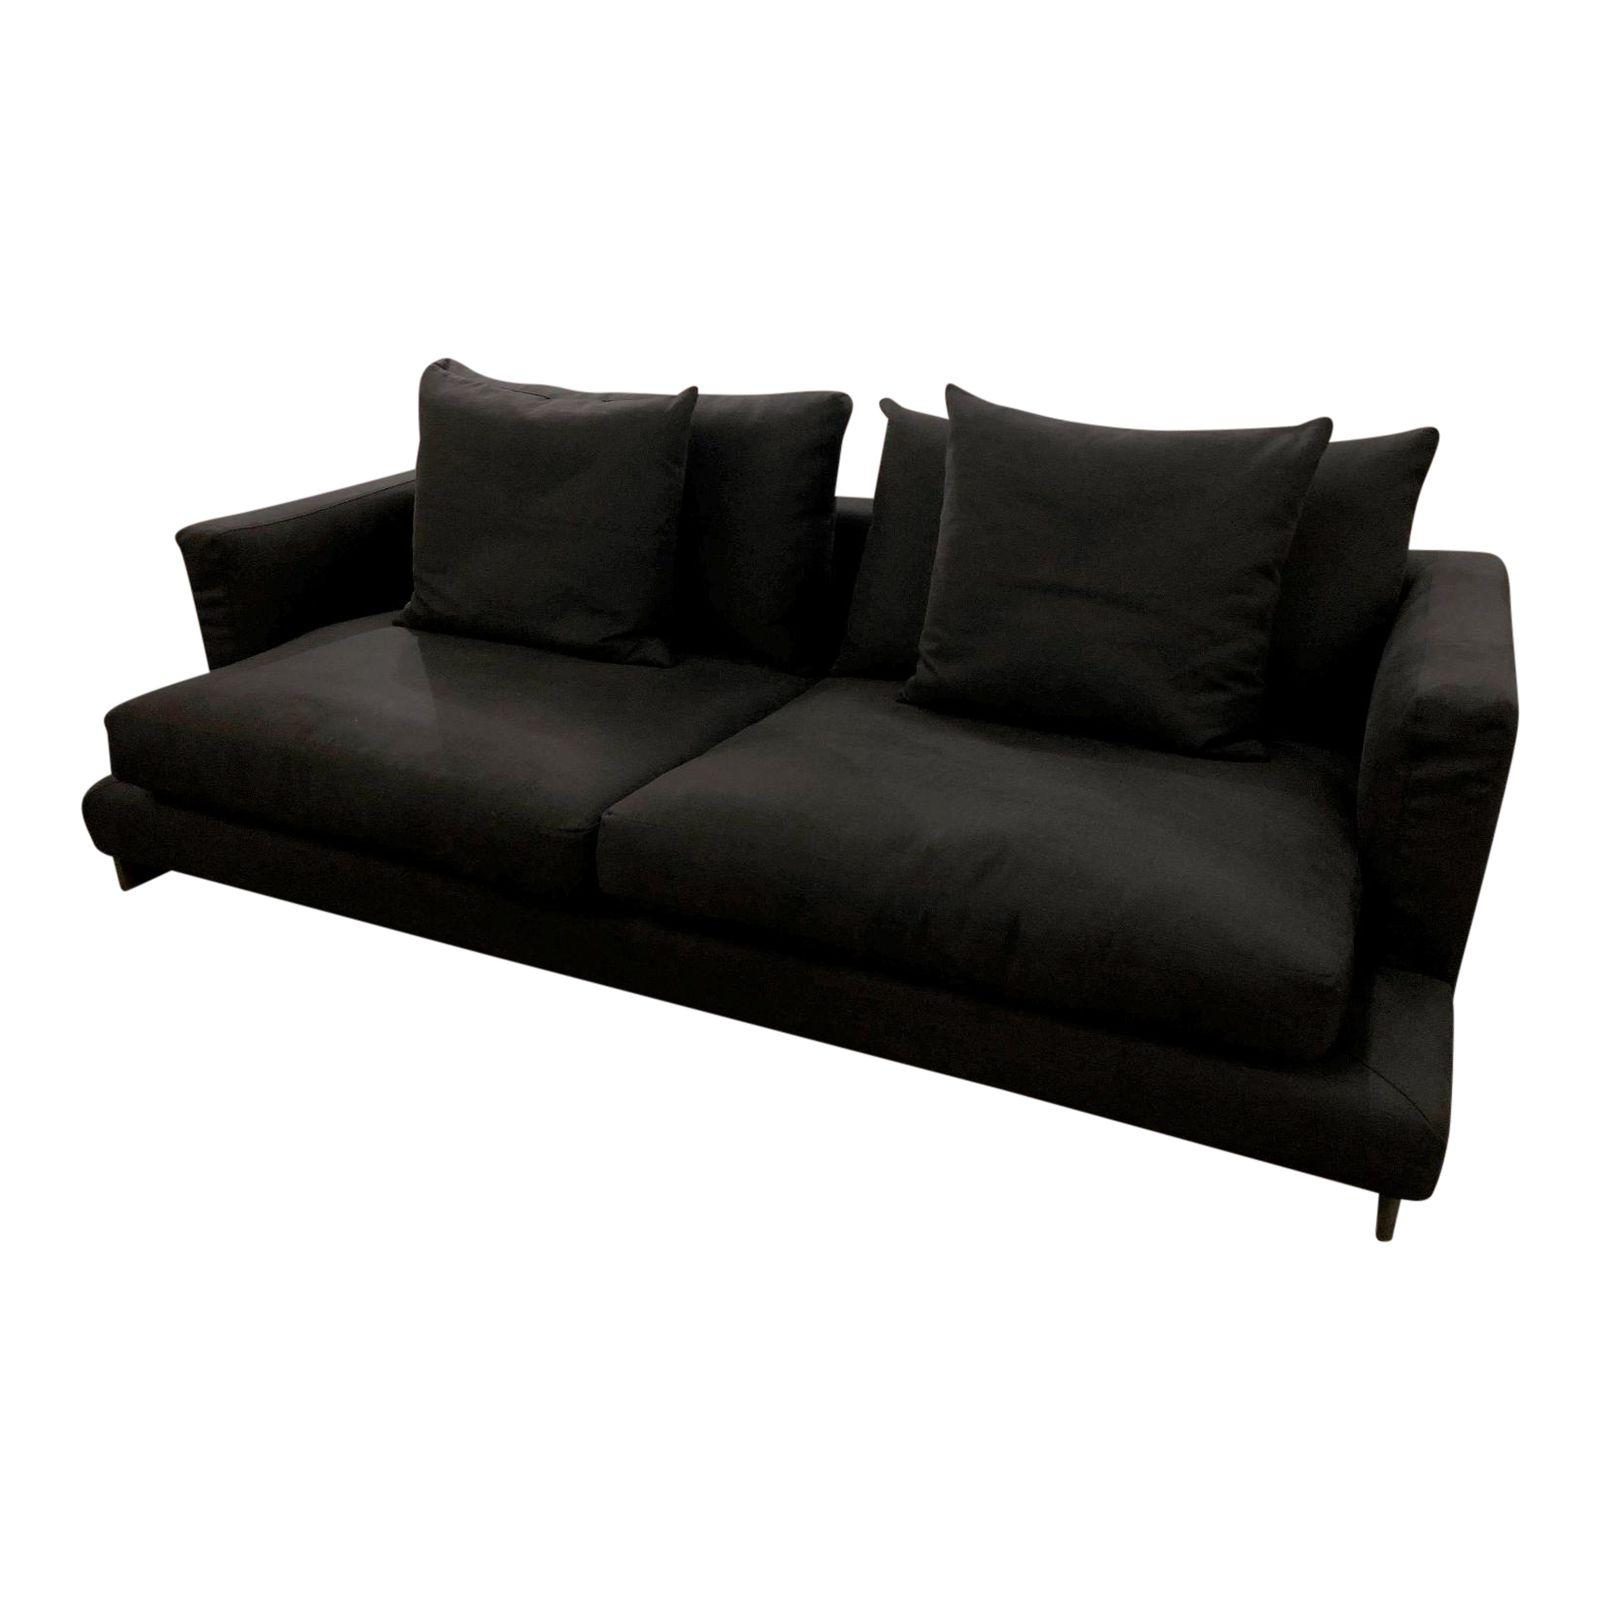 Camerich Lazy Time Small Sofa From The Alchemy Collection Original Price 4 000 00